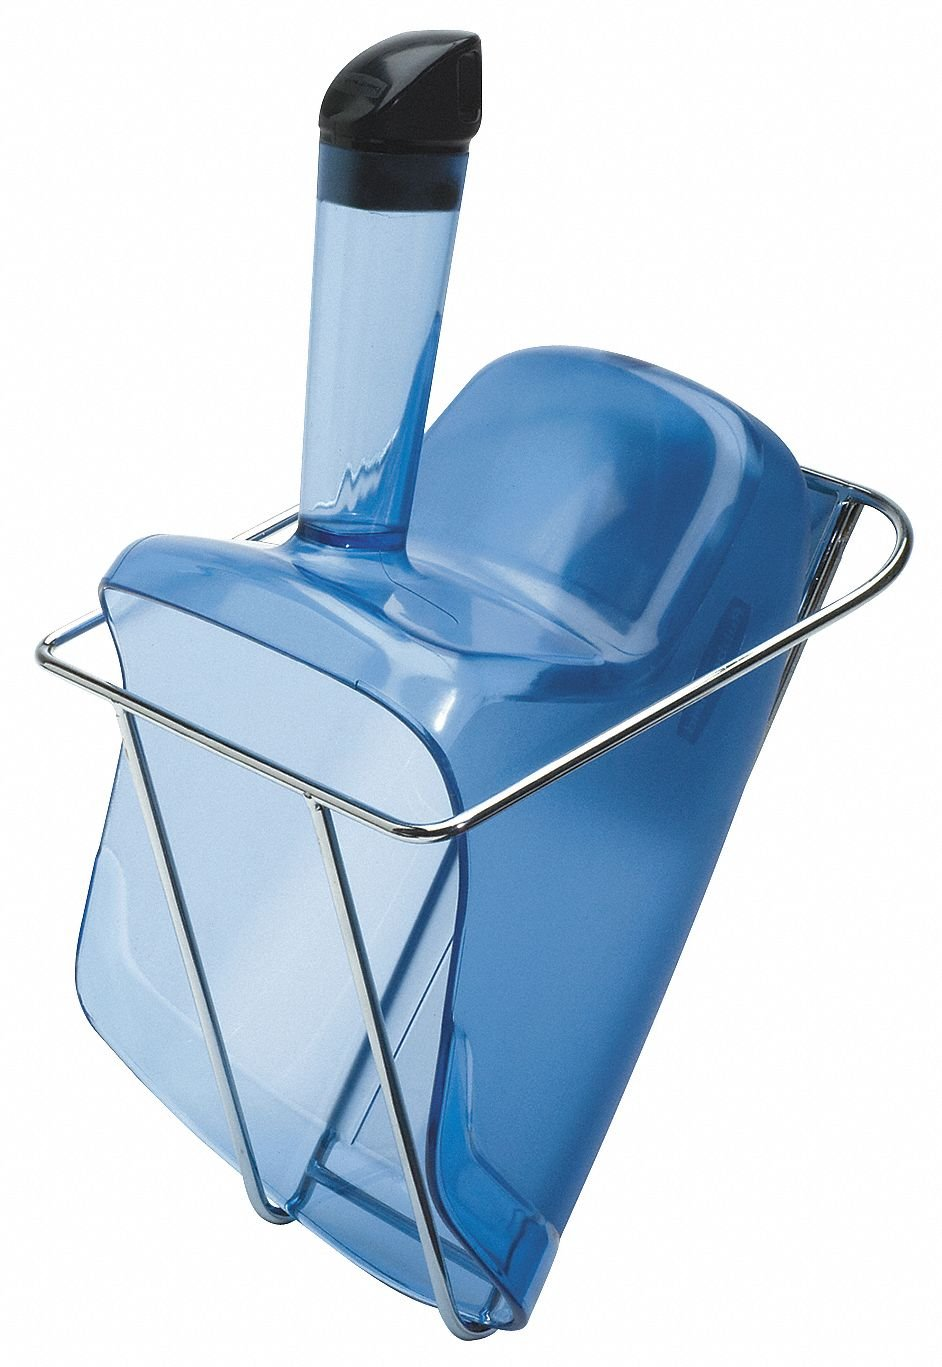 Rubbermaid FG9F5100TBLUE Ice Scoop and Holder - Safe Ice Handling System